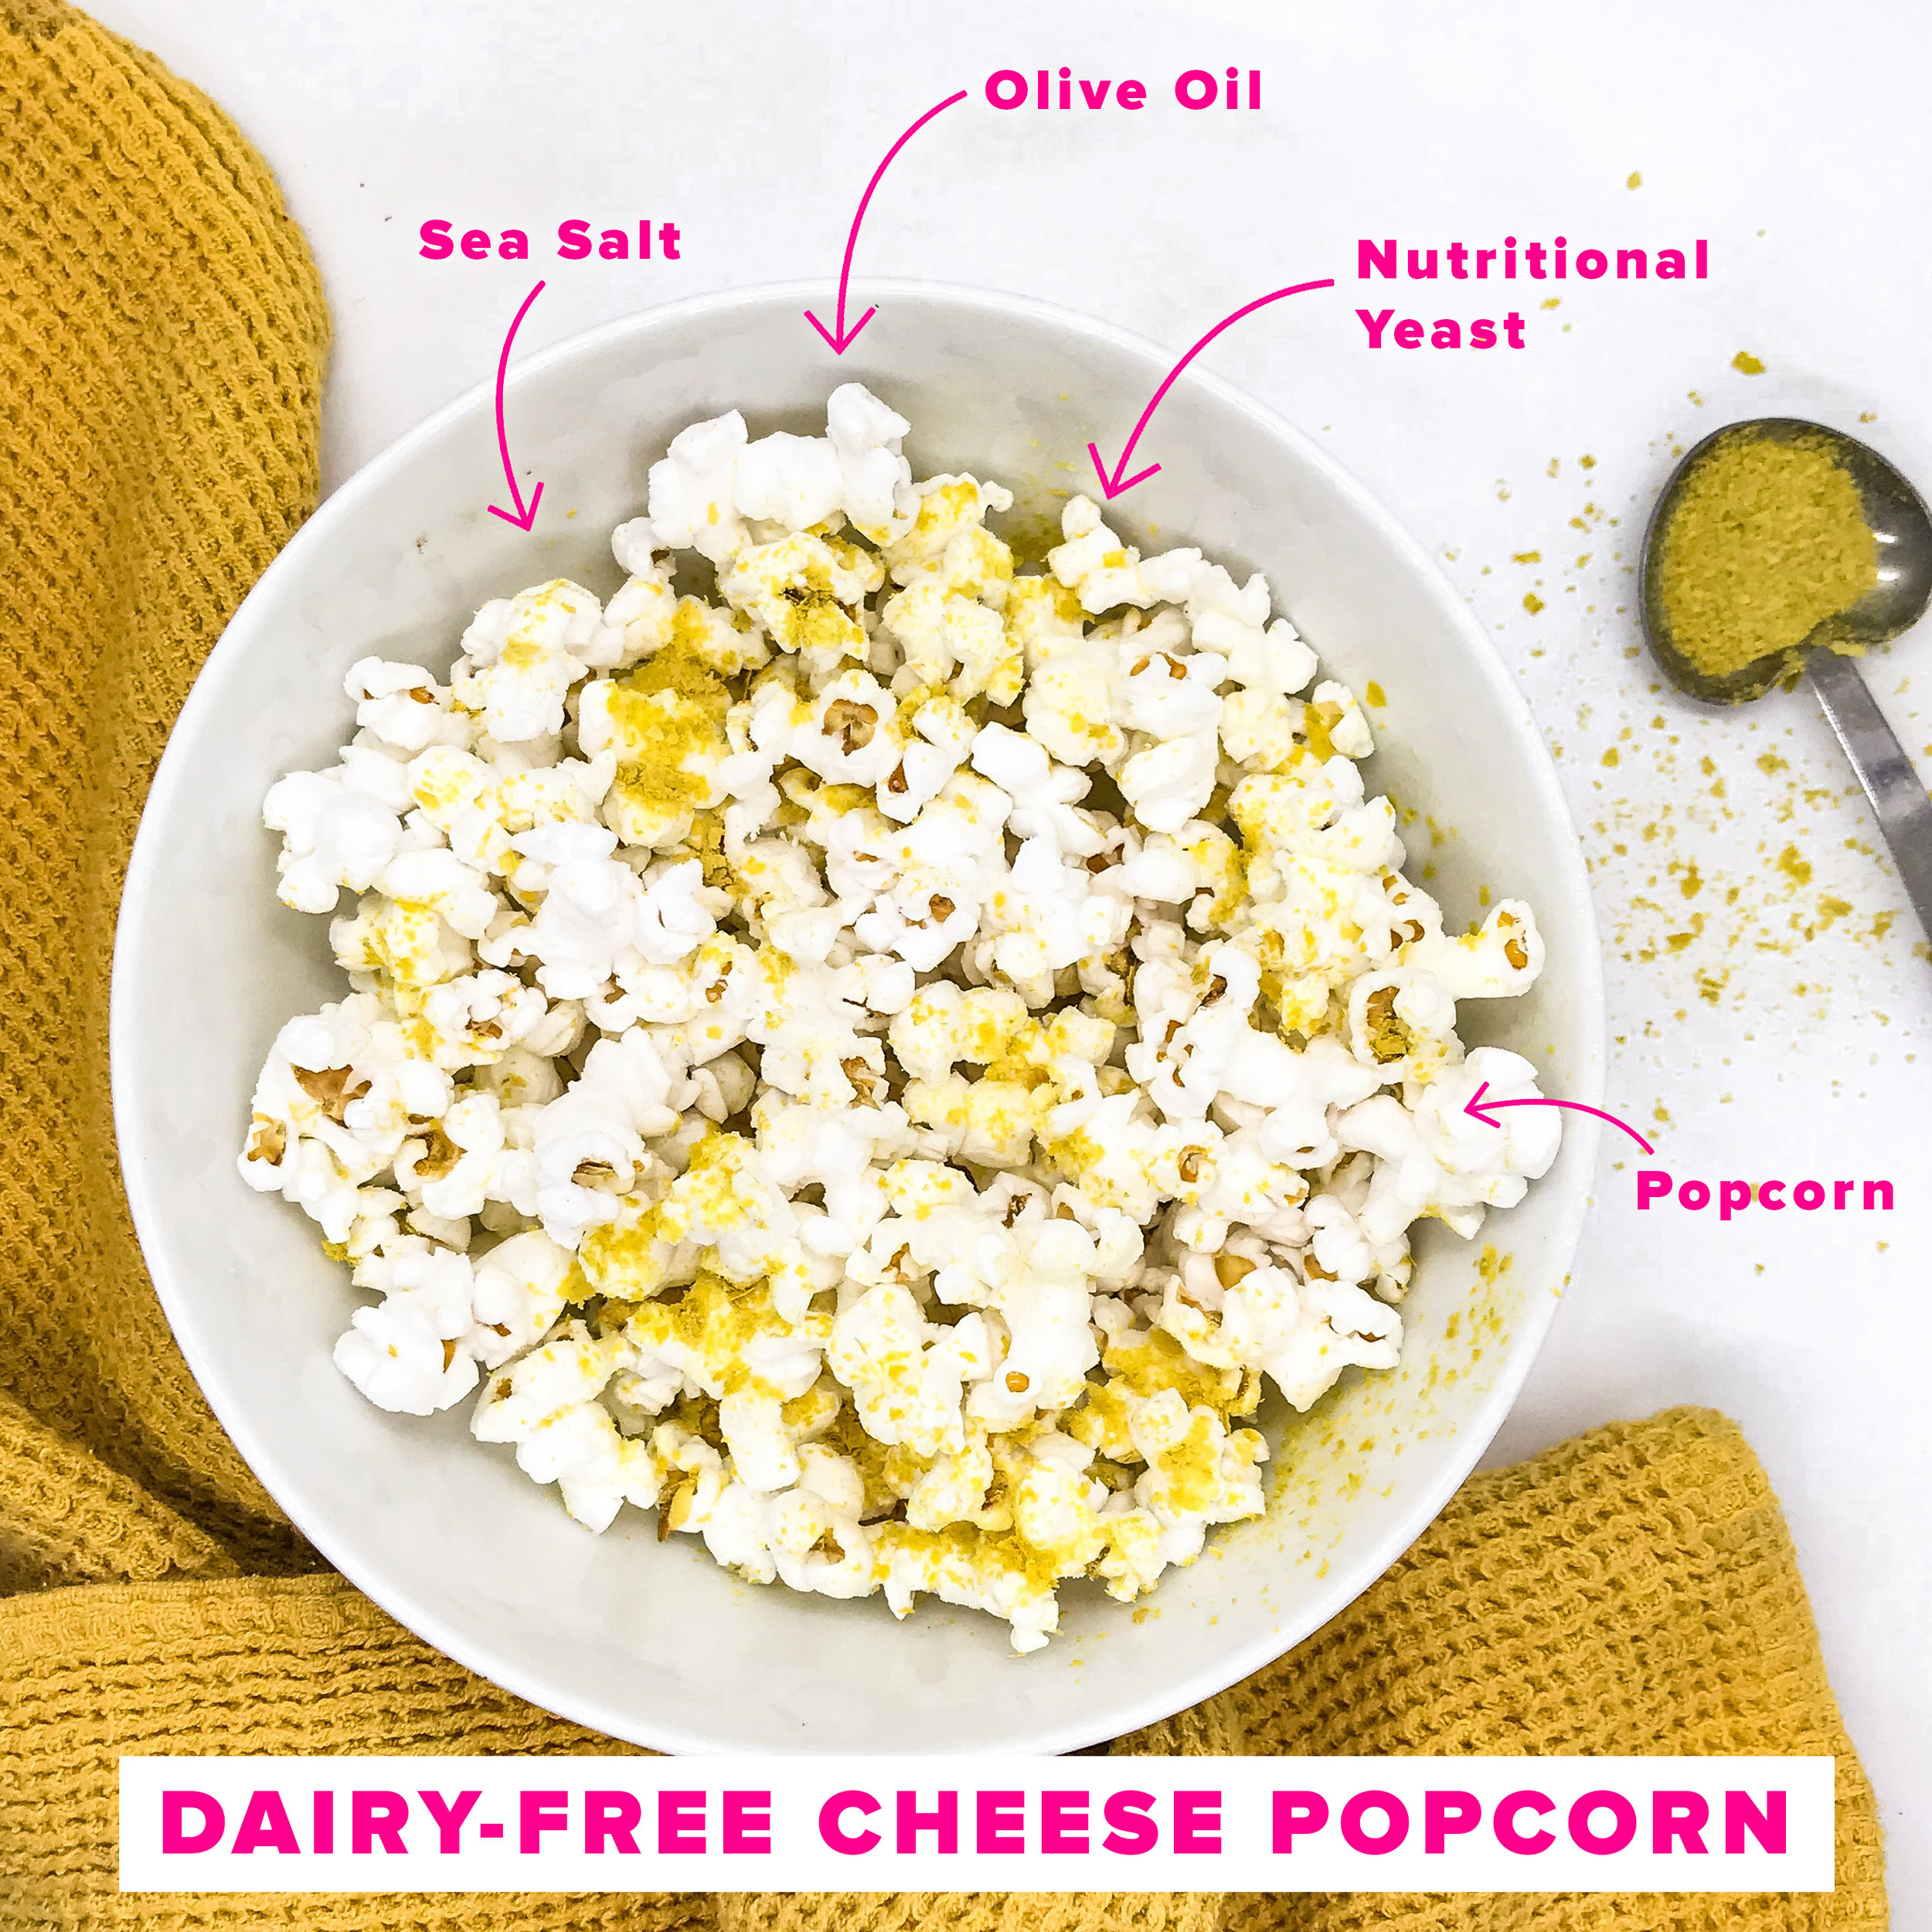 Cheesy Dairy-free Popcorn - Healthy snack options by Fitstagram Michelle